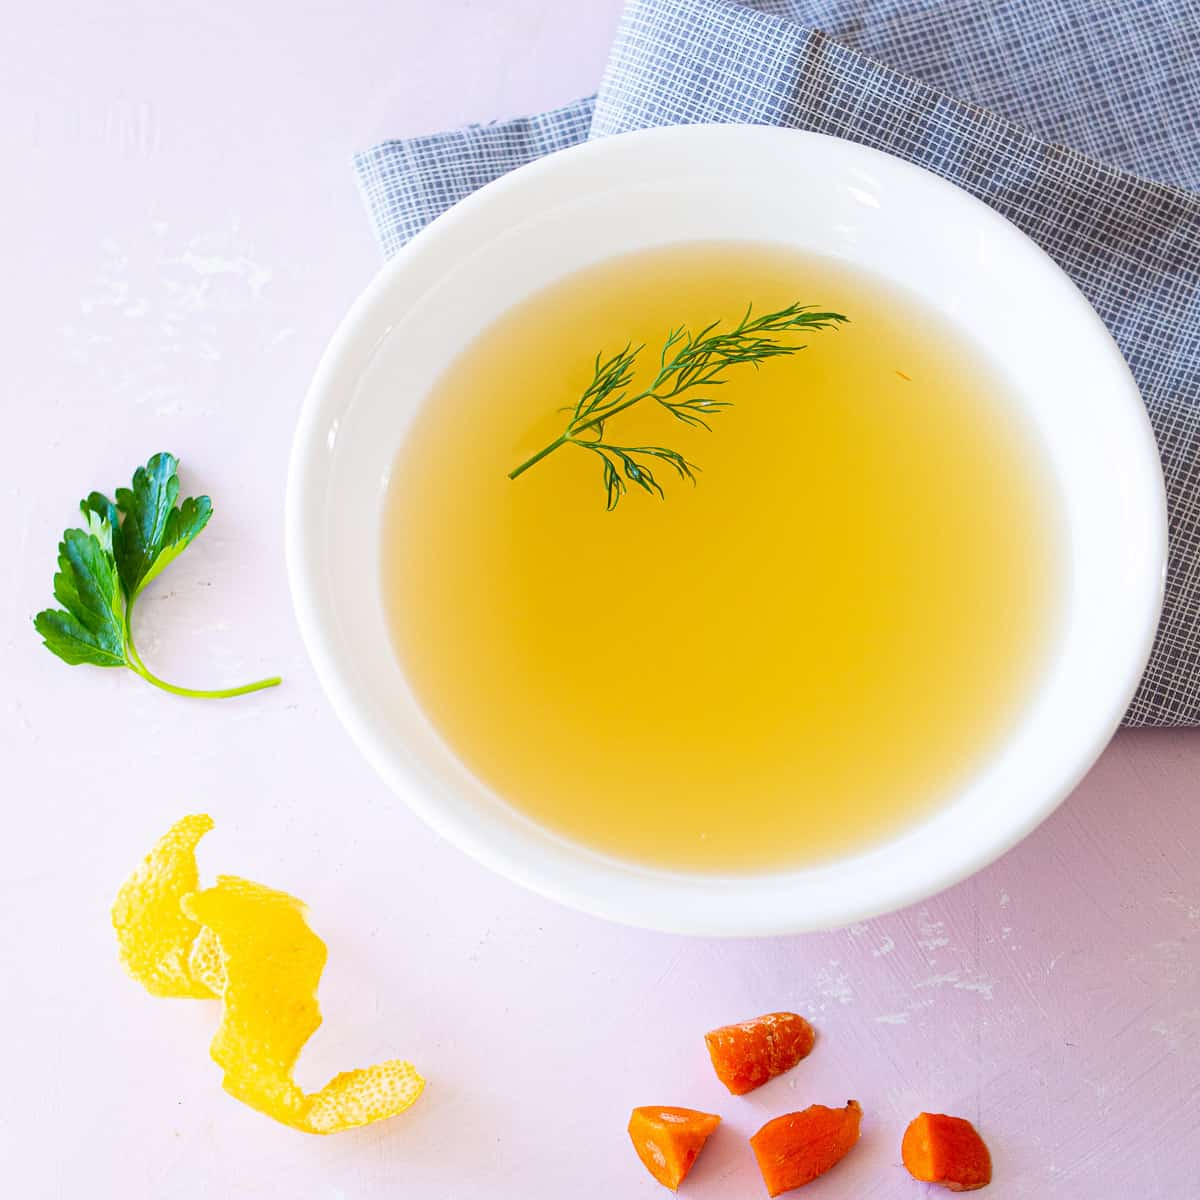 A bowl of court bouillon next to a lemon peel, diced carrot, and a leaf of parsley with a napkin